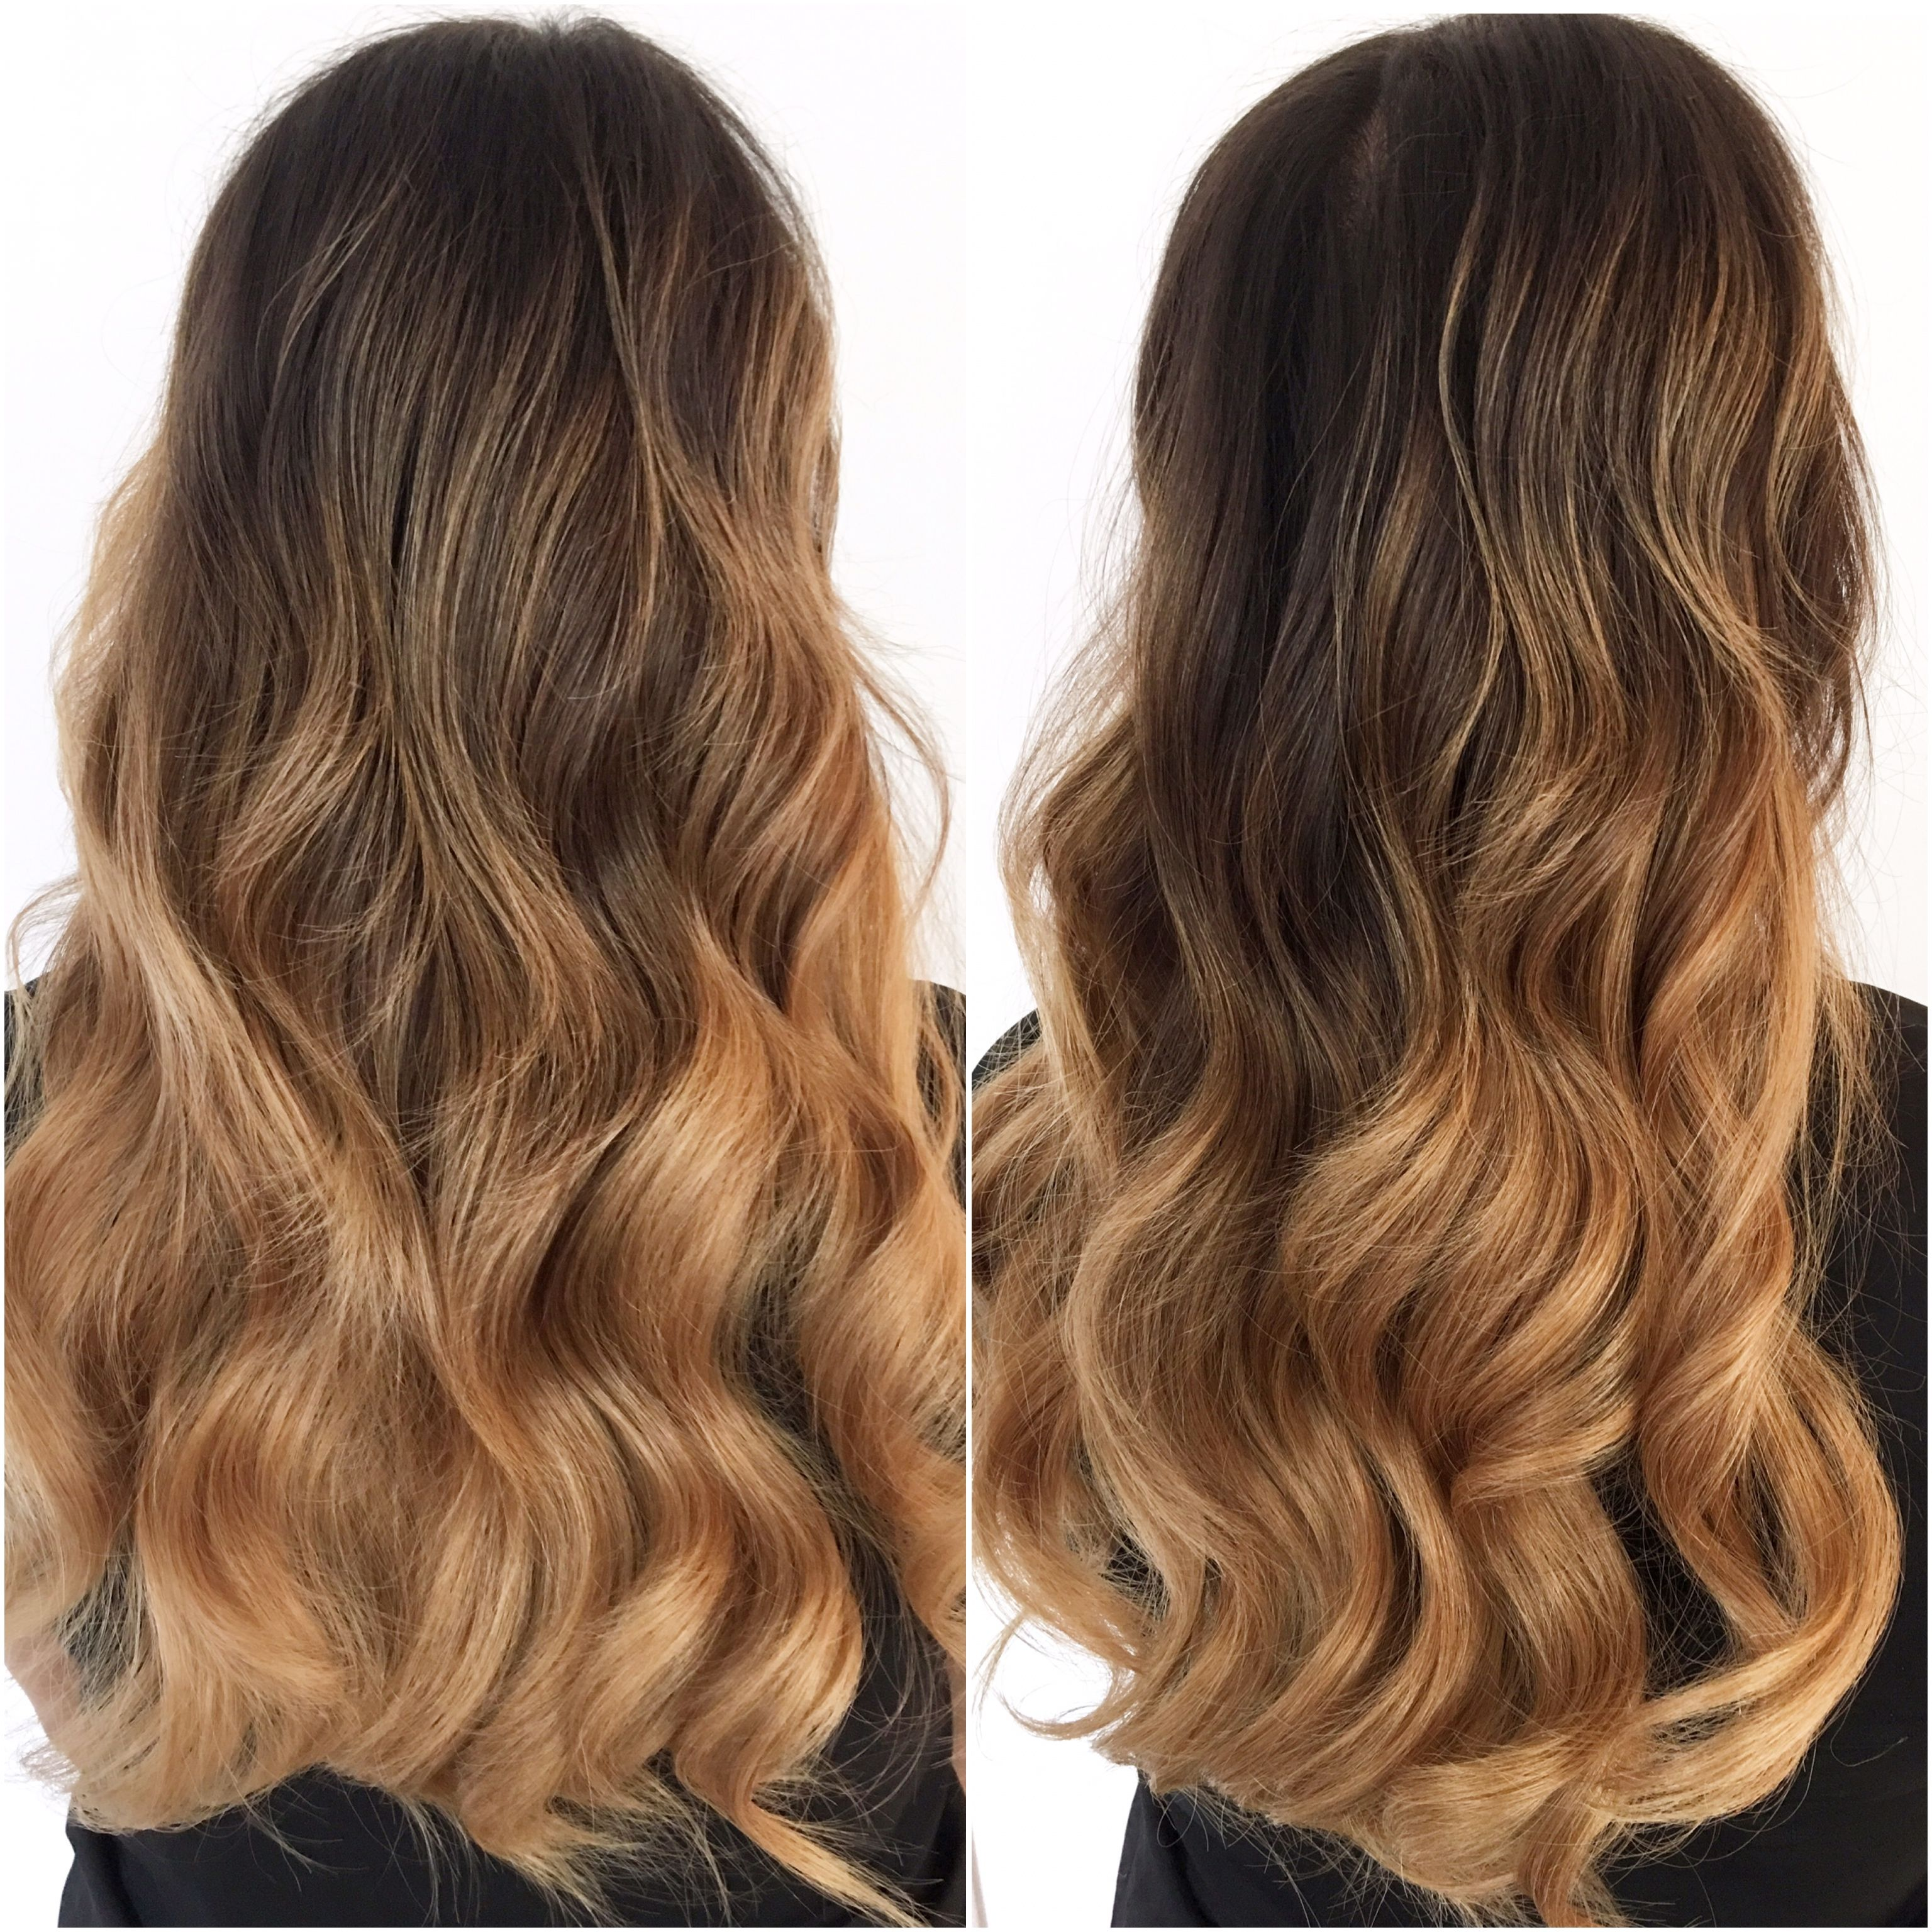 Honey blonde ombr tape hair extensions tapehair honey blonde ombr tape hair extensions tapehair tapeextensions hairextensions ombre pmusecretfo Gallery